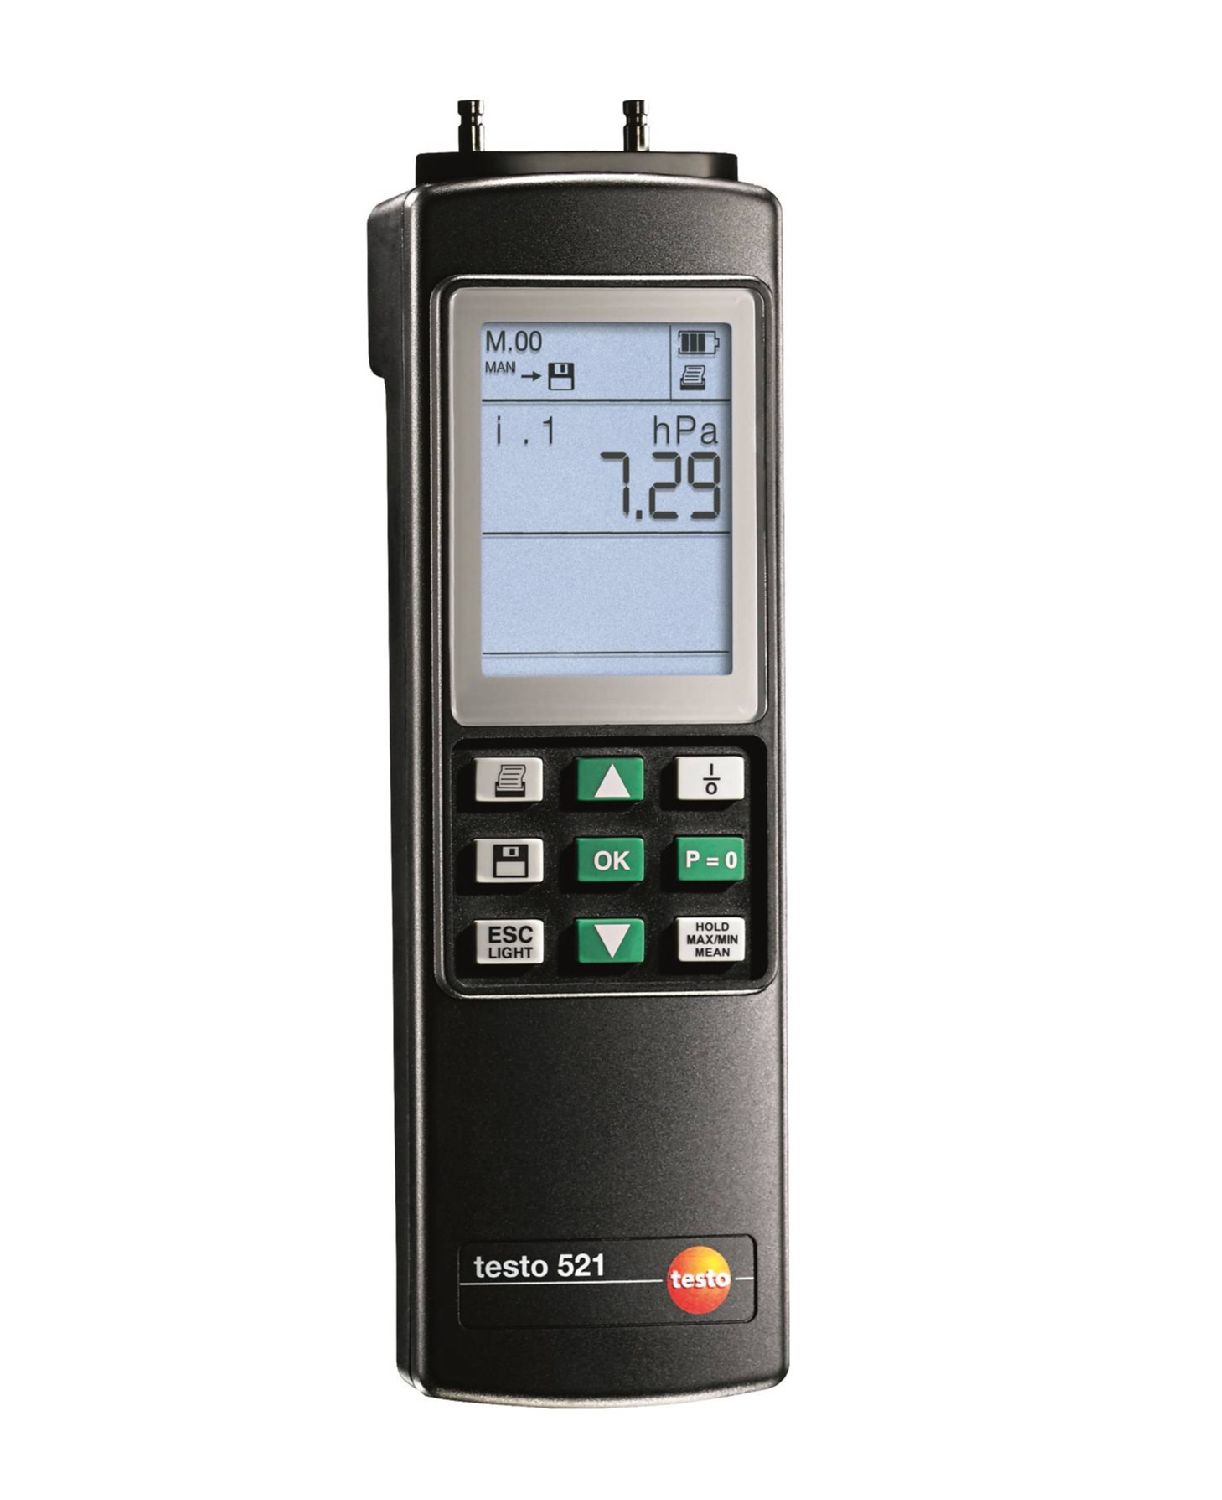 testo 521-1